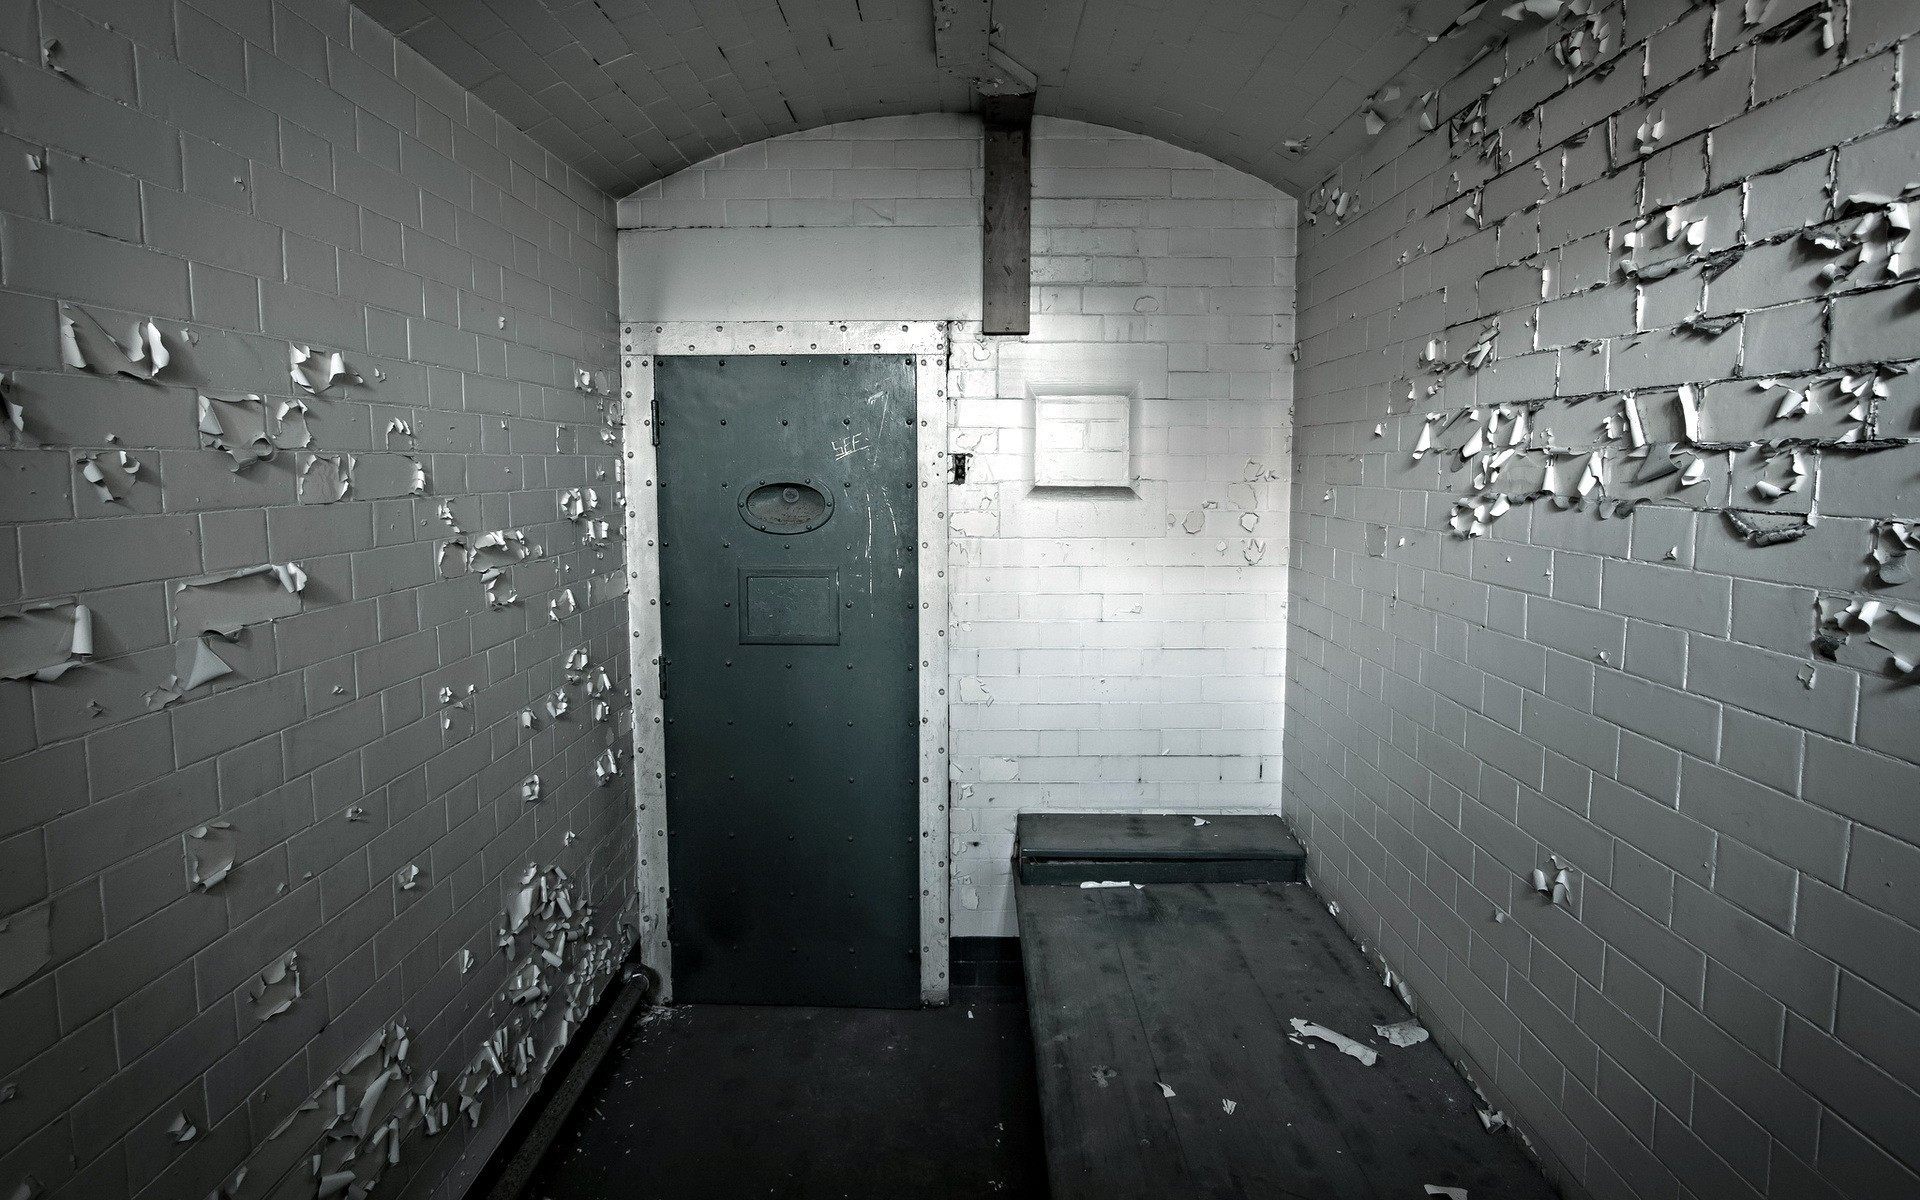 Cellar door prison wall wide angle wallpaper 1920x1200